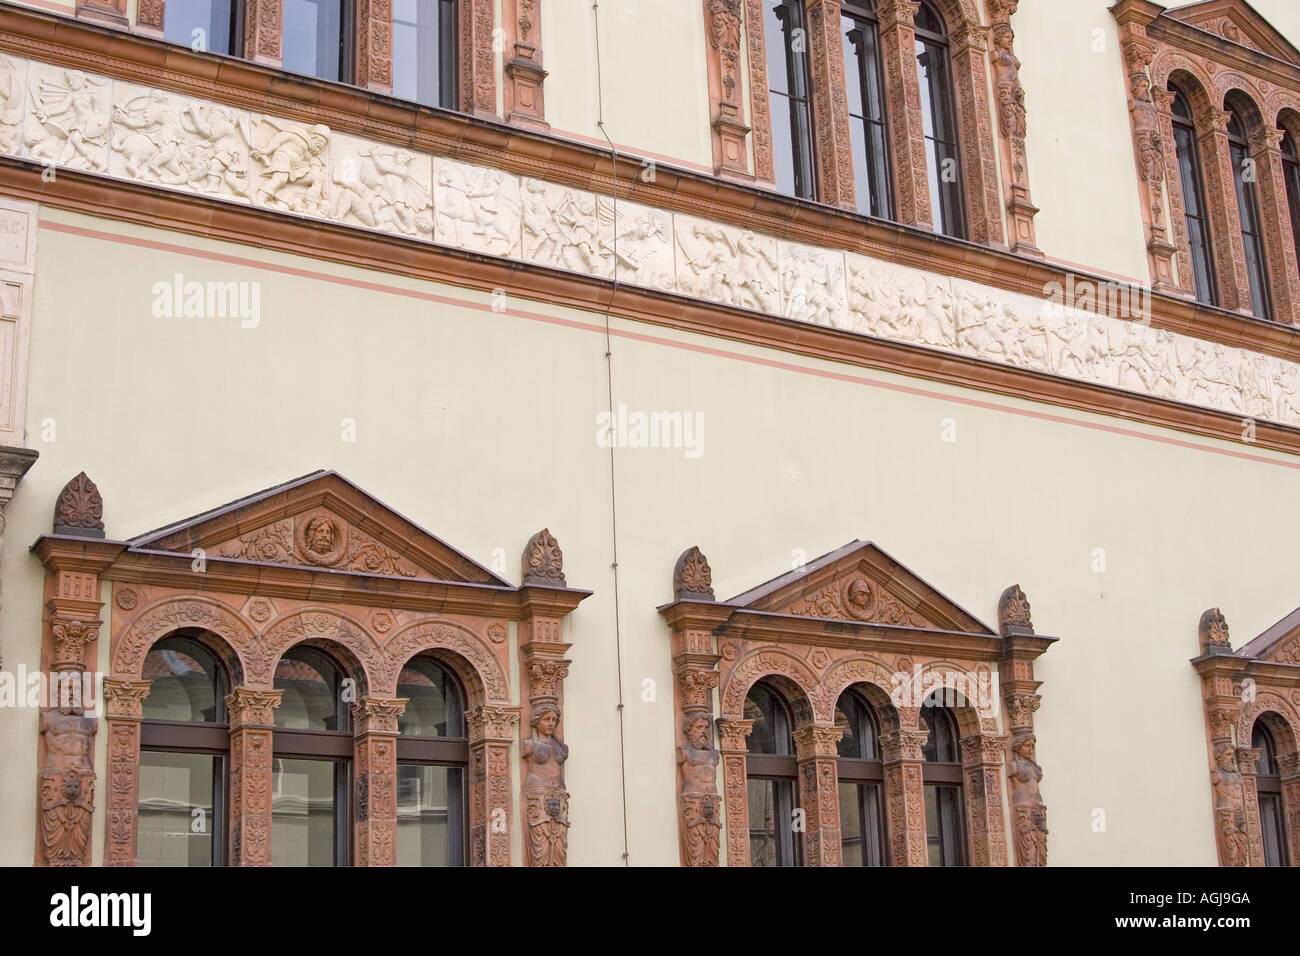 germany mecklenburg vorpommern facade of the district court in the old town of wismar - Stock Image